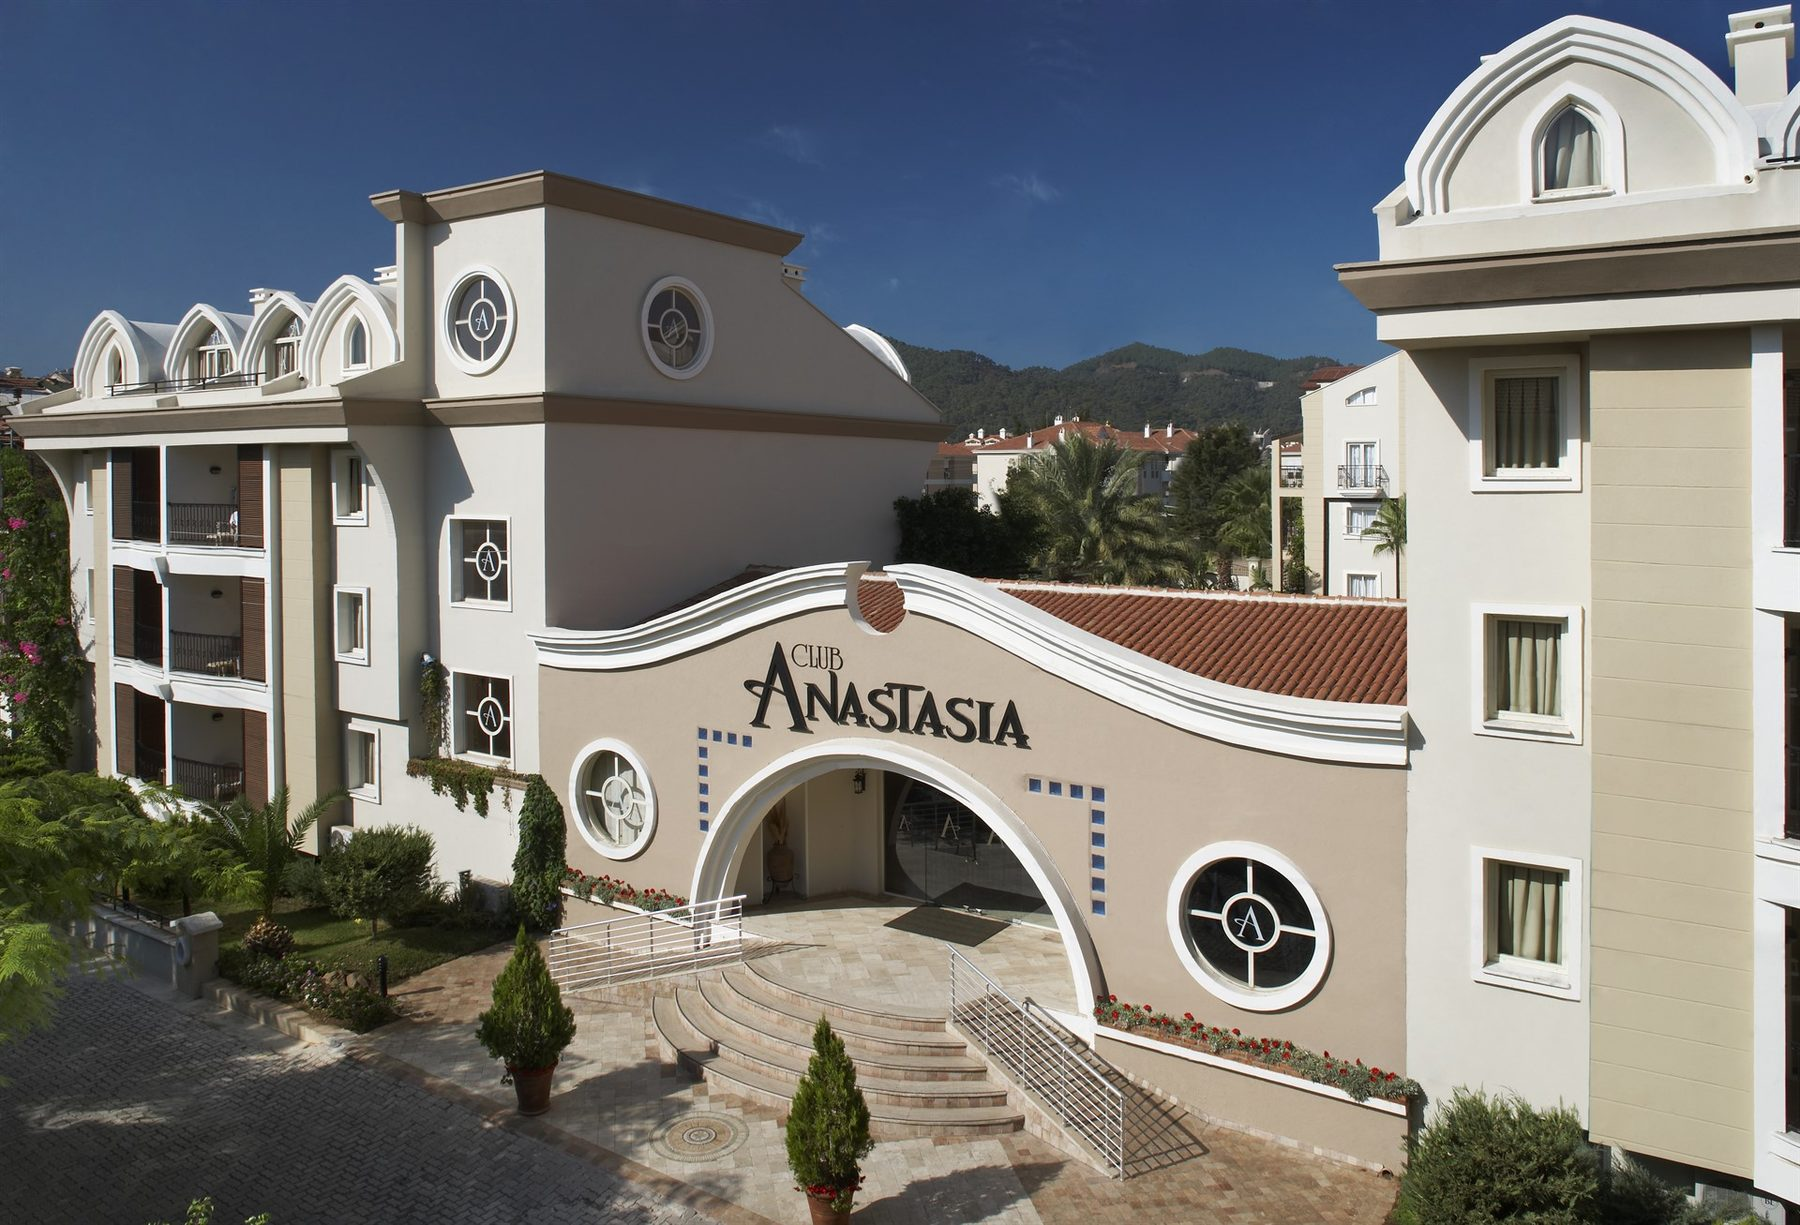 Club Anastasia Apartments